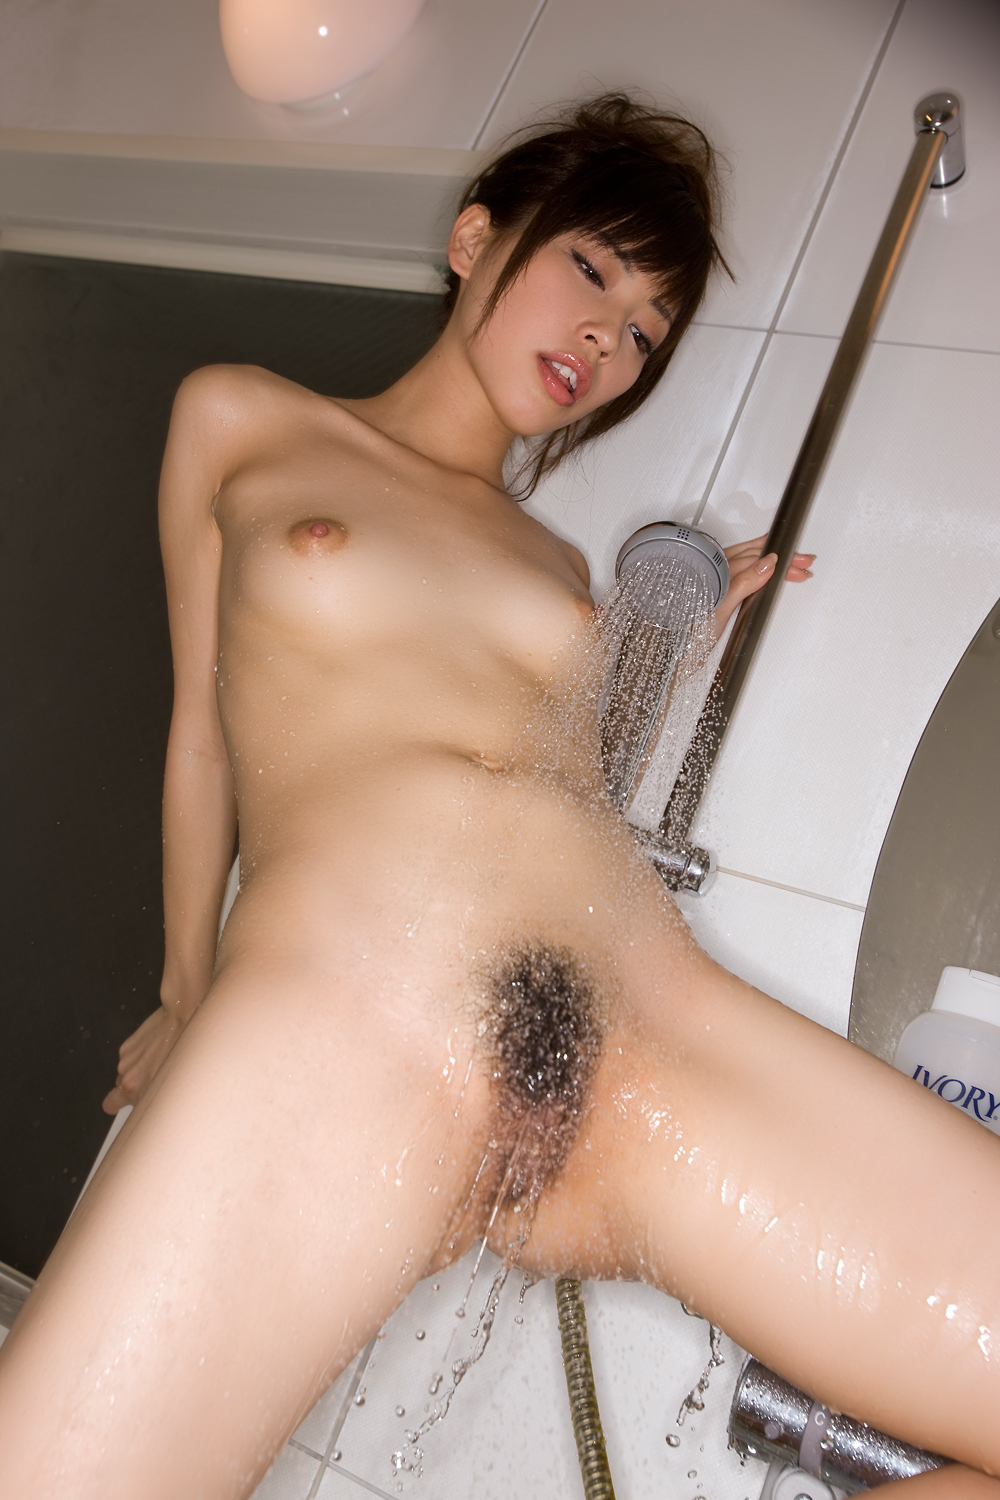 Shower taking a girls hot sexy